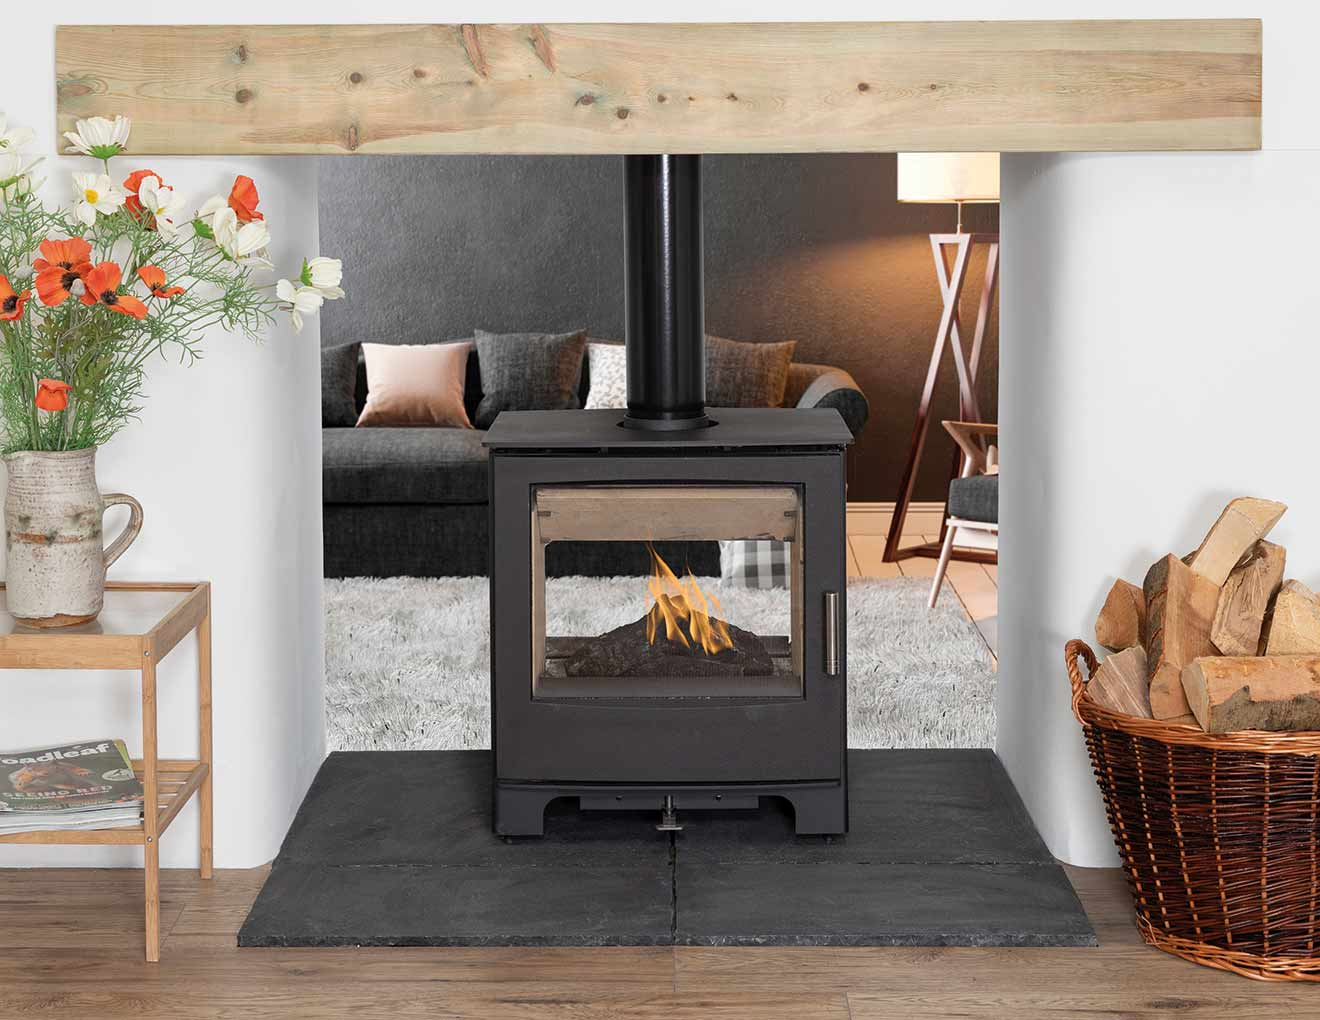 Woodland 8kW Double Sided Stove Featured Image